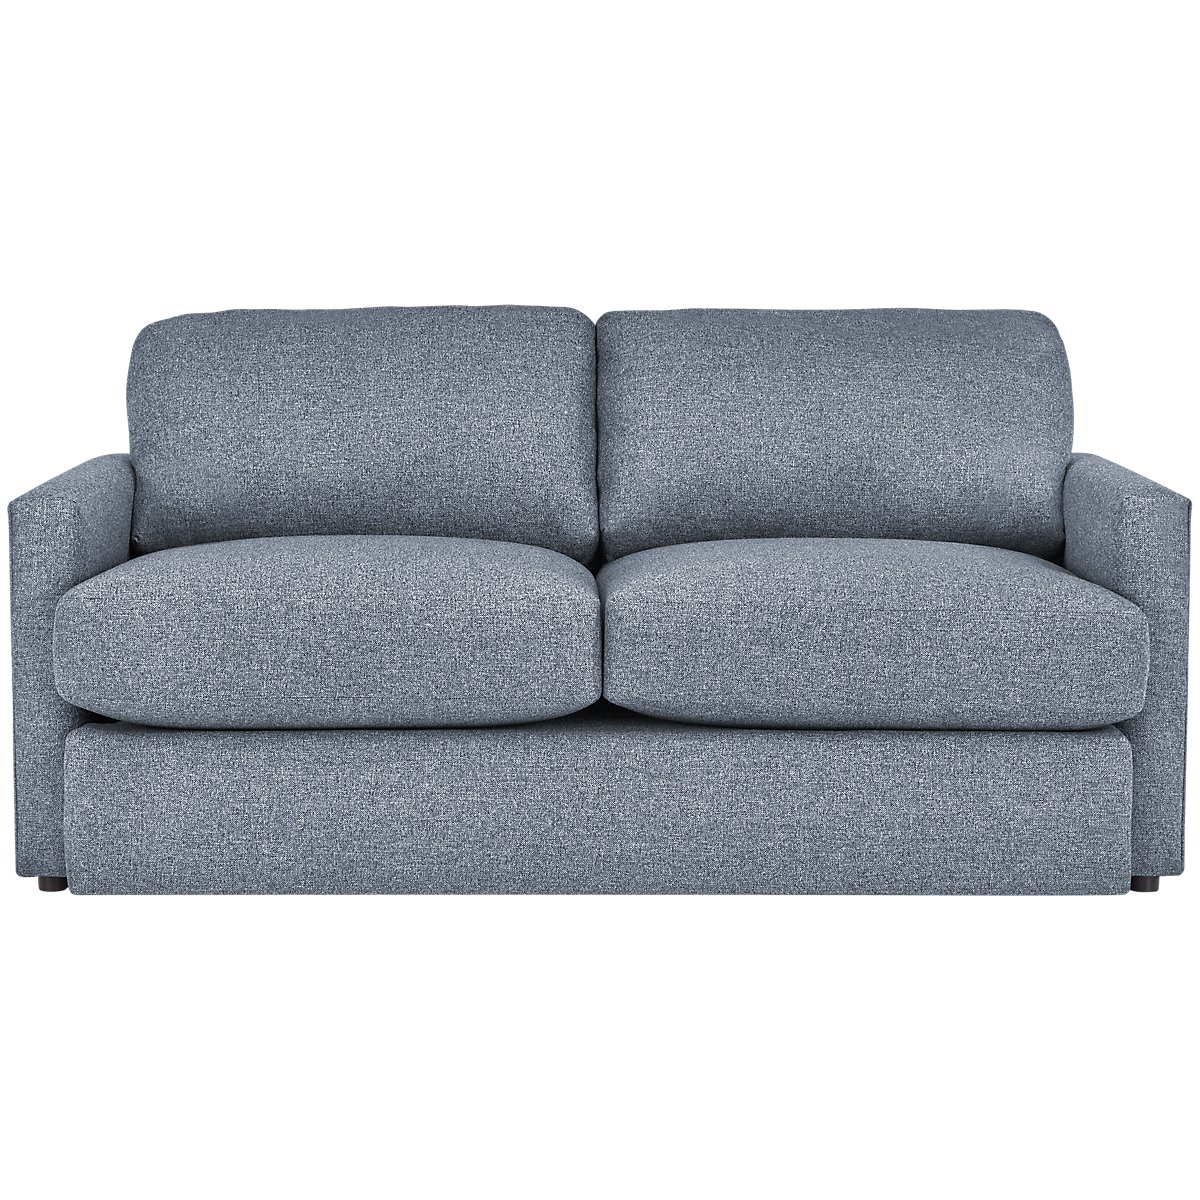 Noah Dark Gray Fabric Loveseat